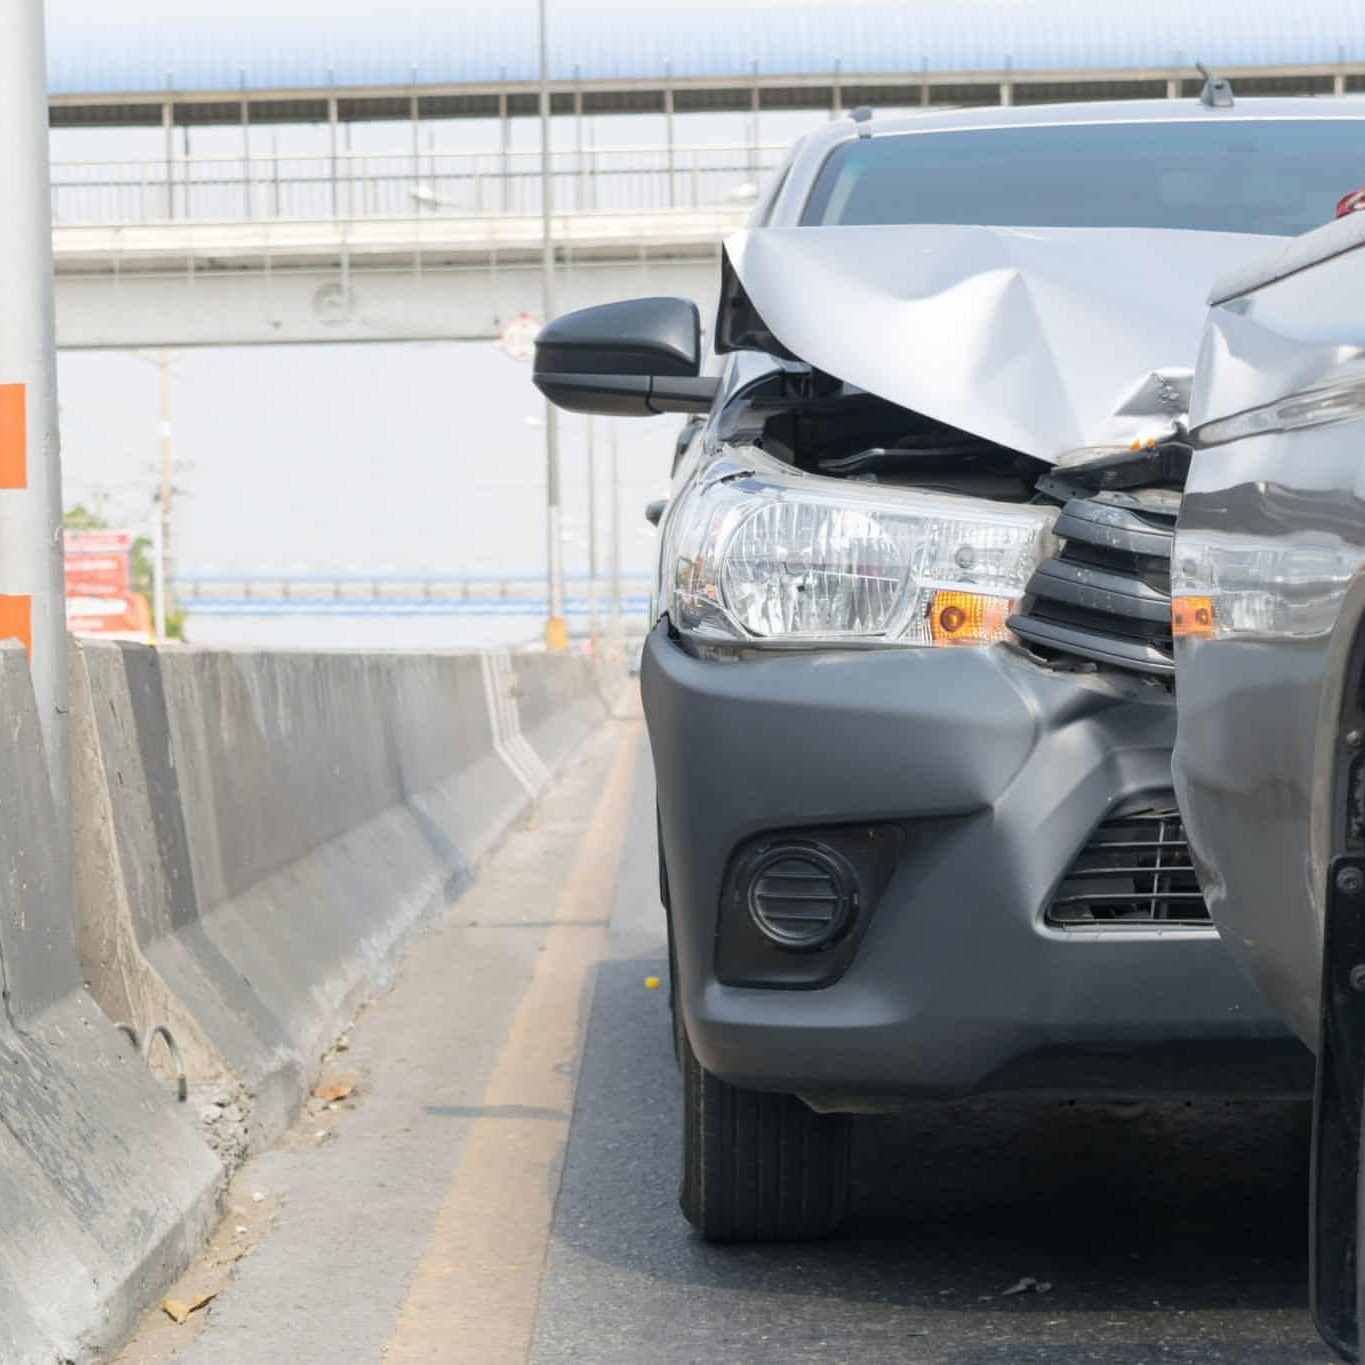 9 Types of Back and Neck Injuries From Rear-End Collisions